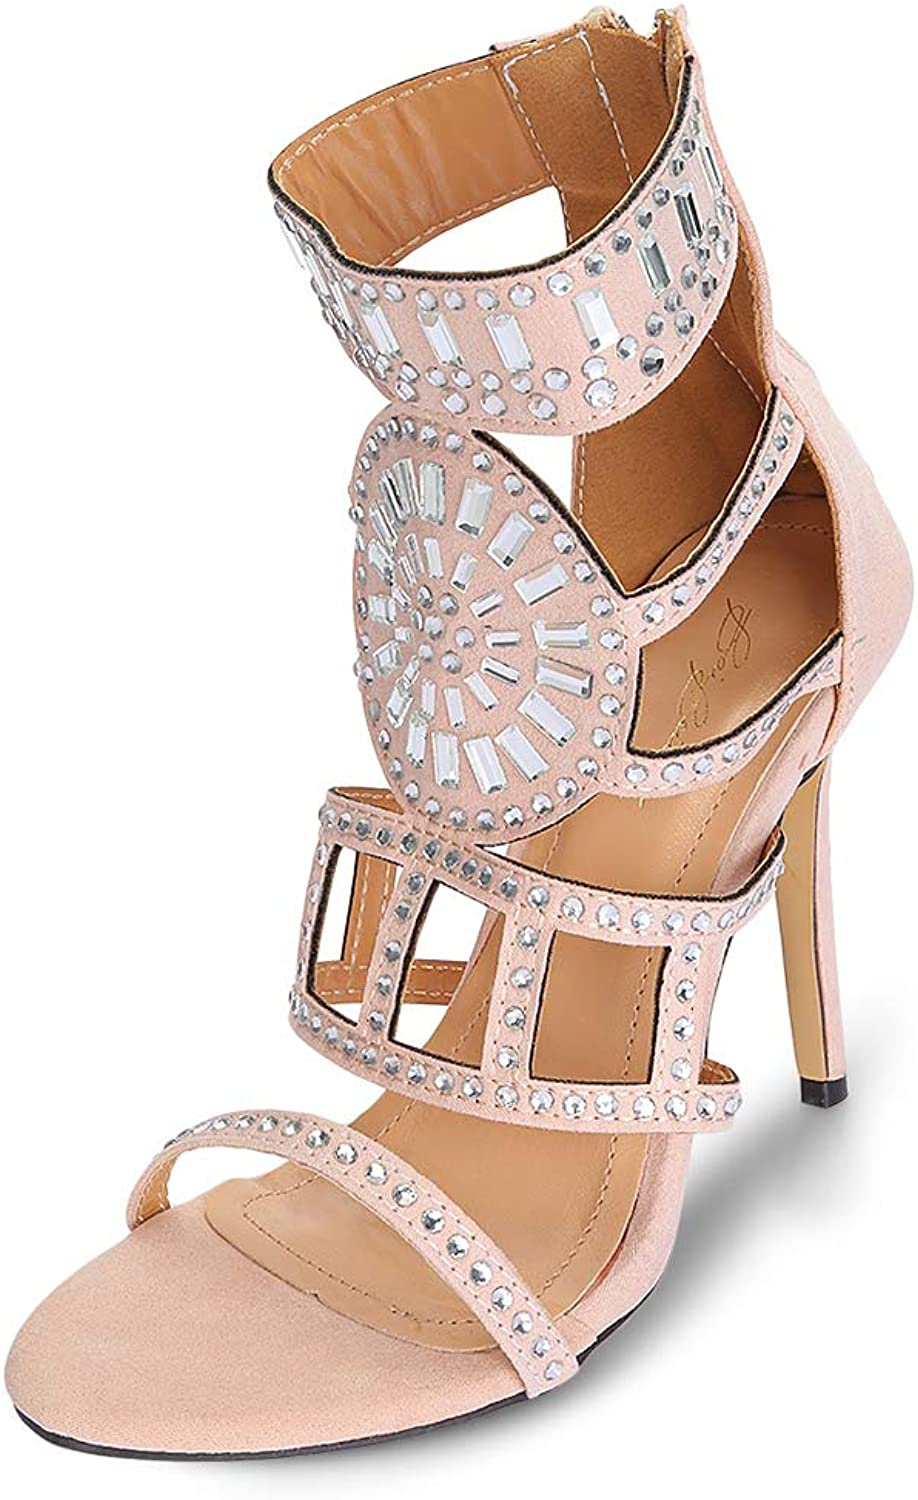 KCatsy Trendy Pointed Toe Hollow Out Rhinestone Stiletto Heel Sandals Women shoes